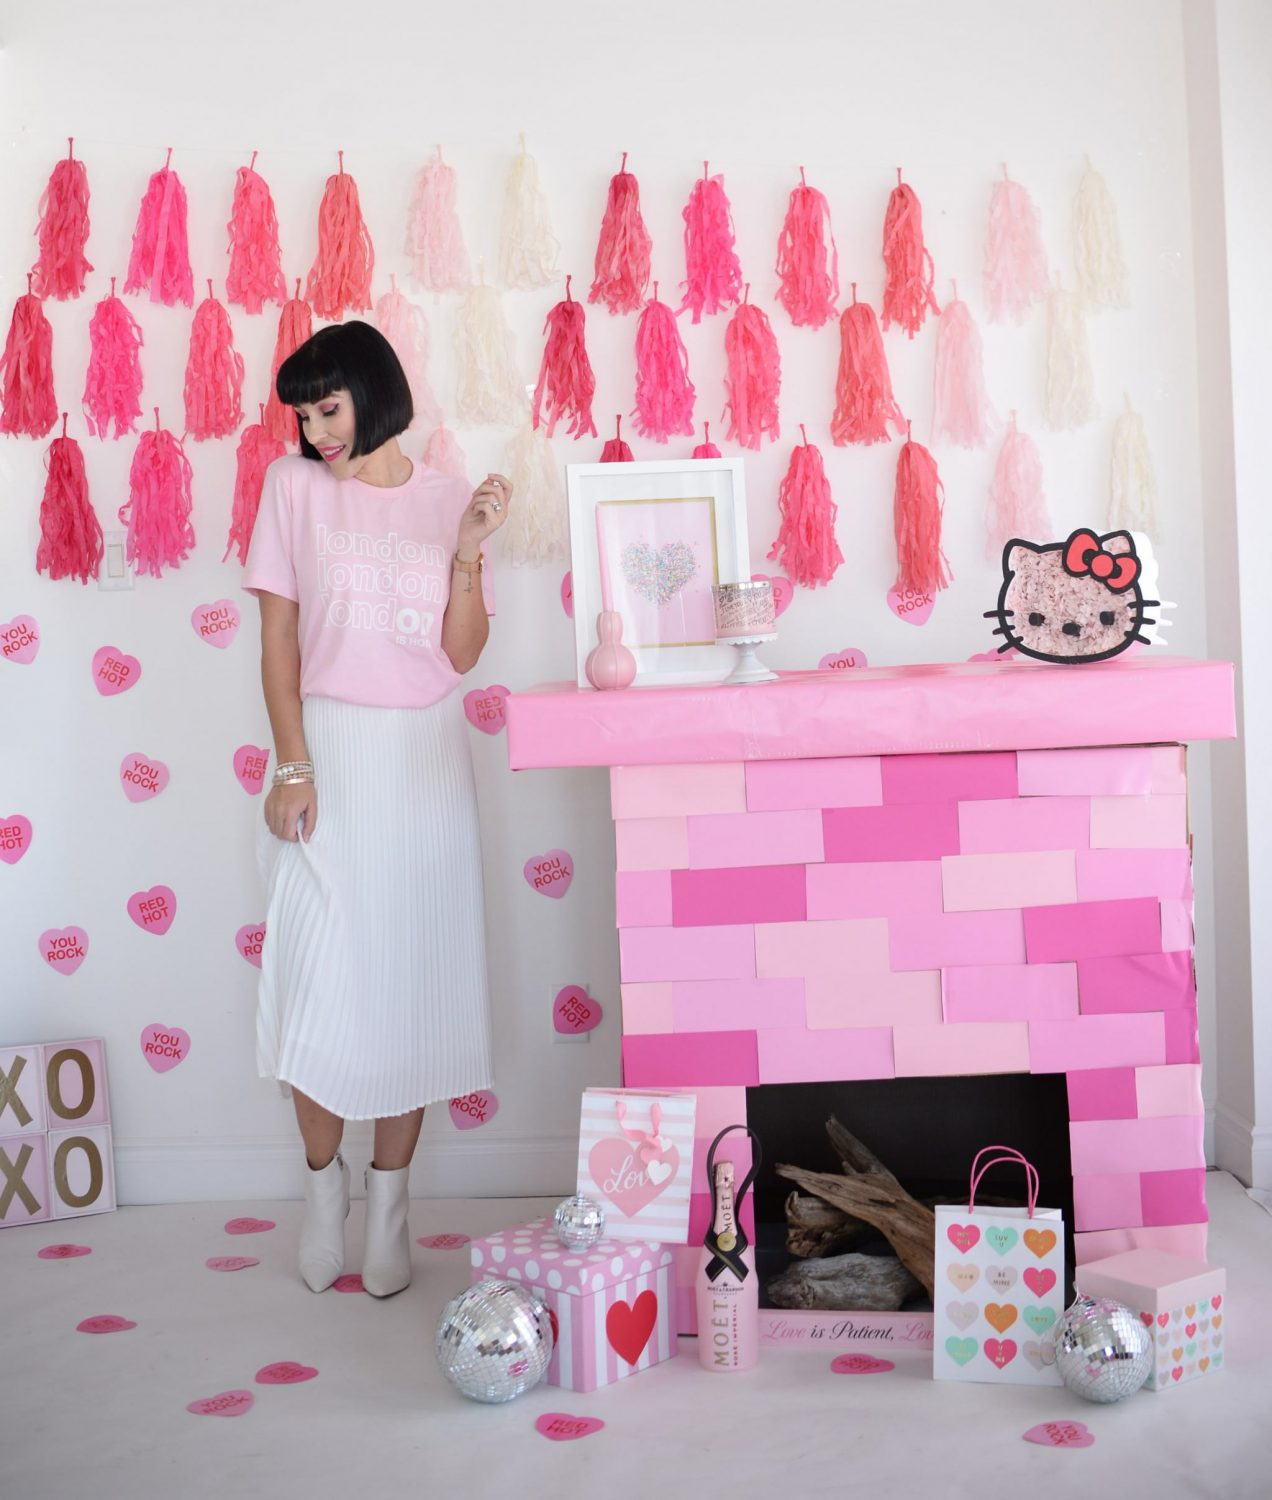 Tips for Styling Pink This Valentine's Day